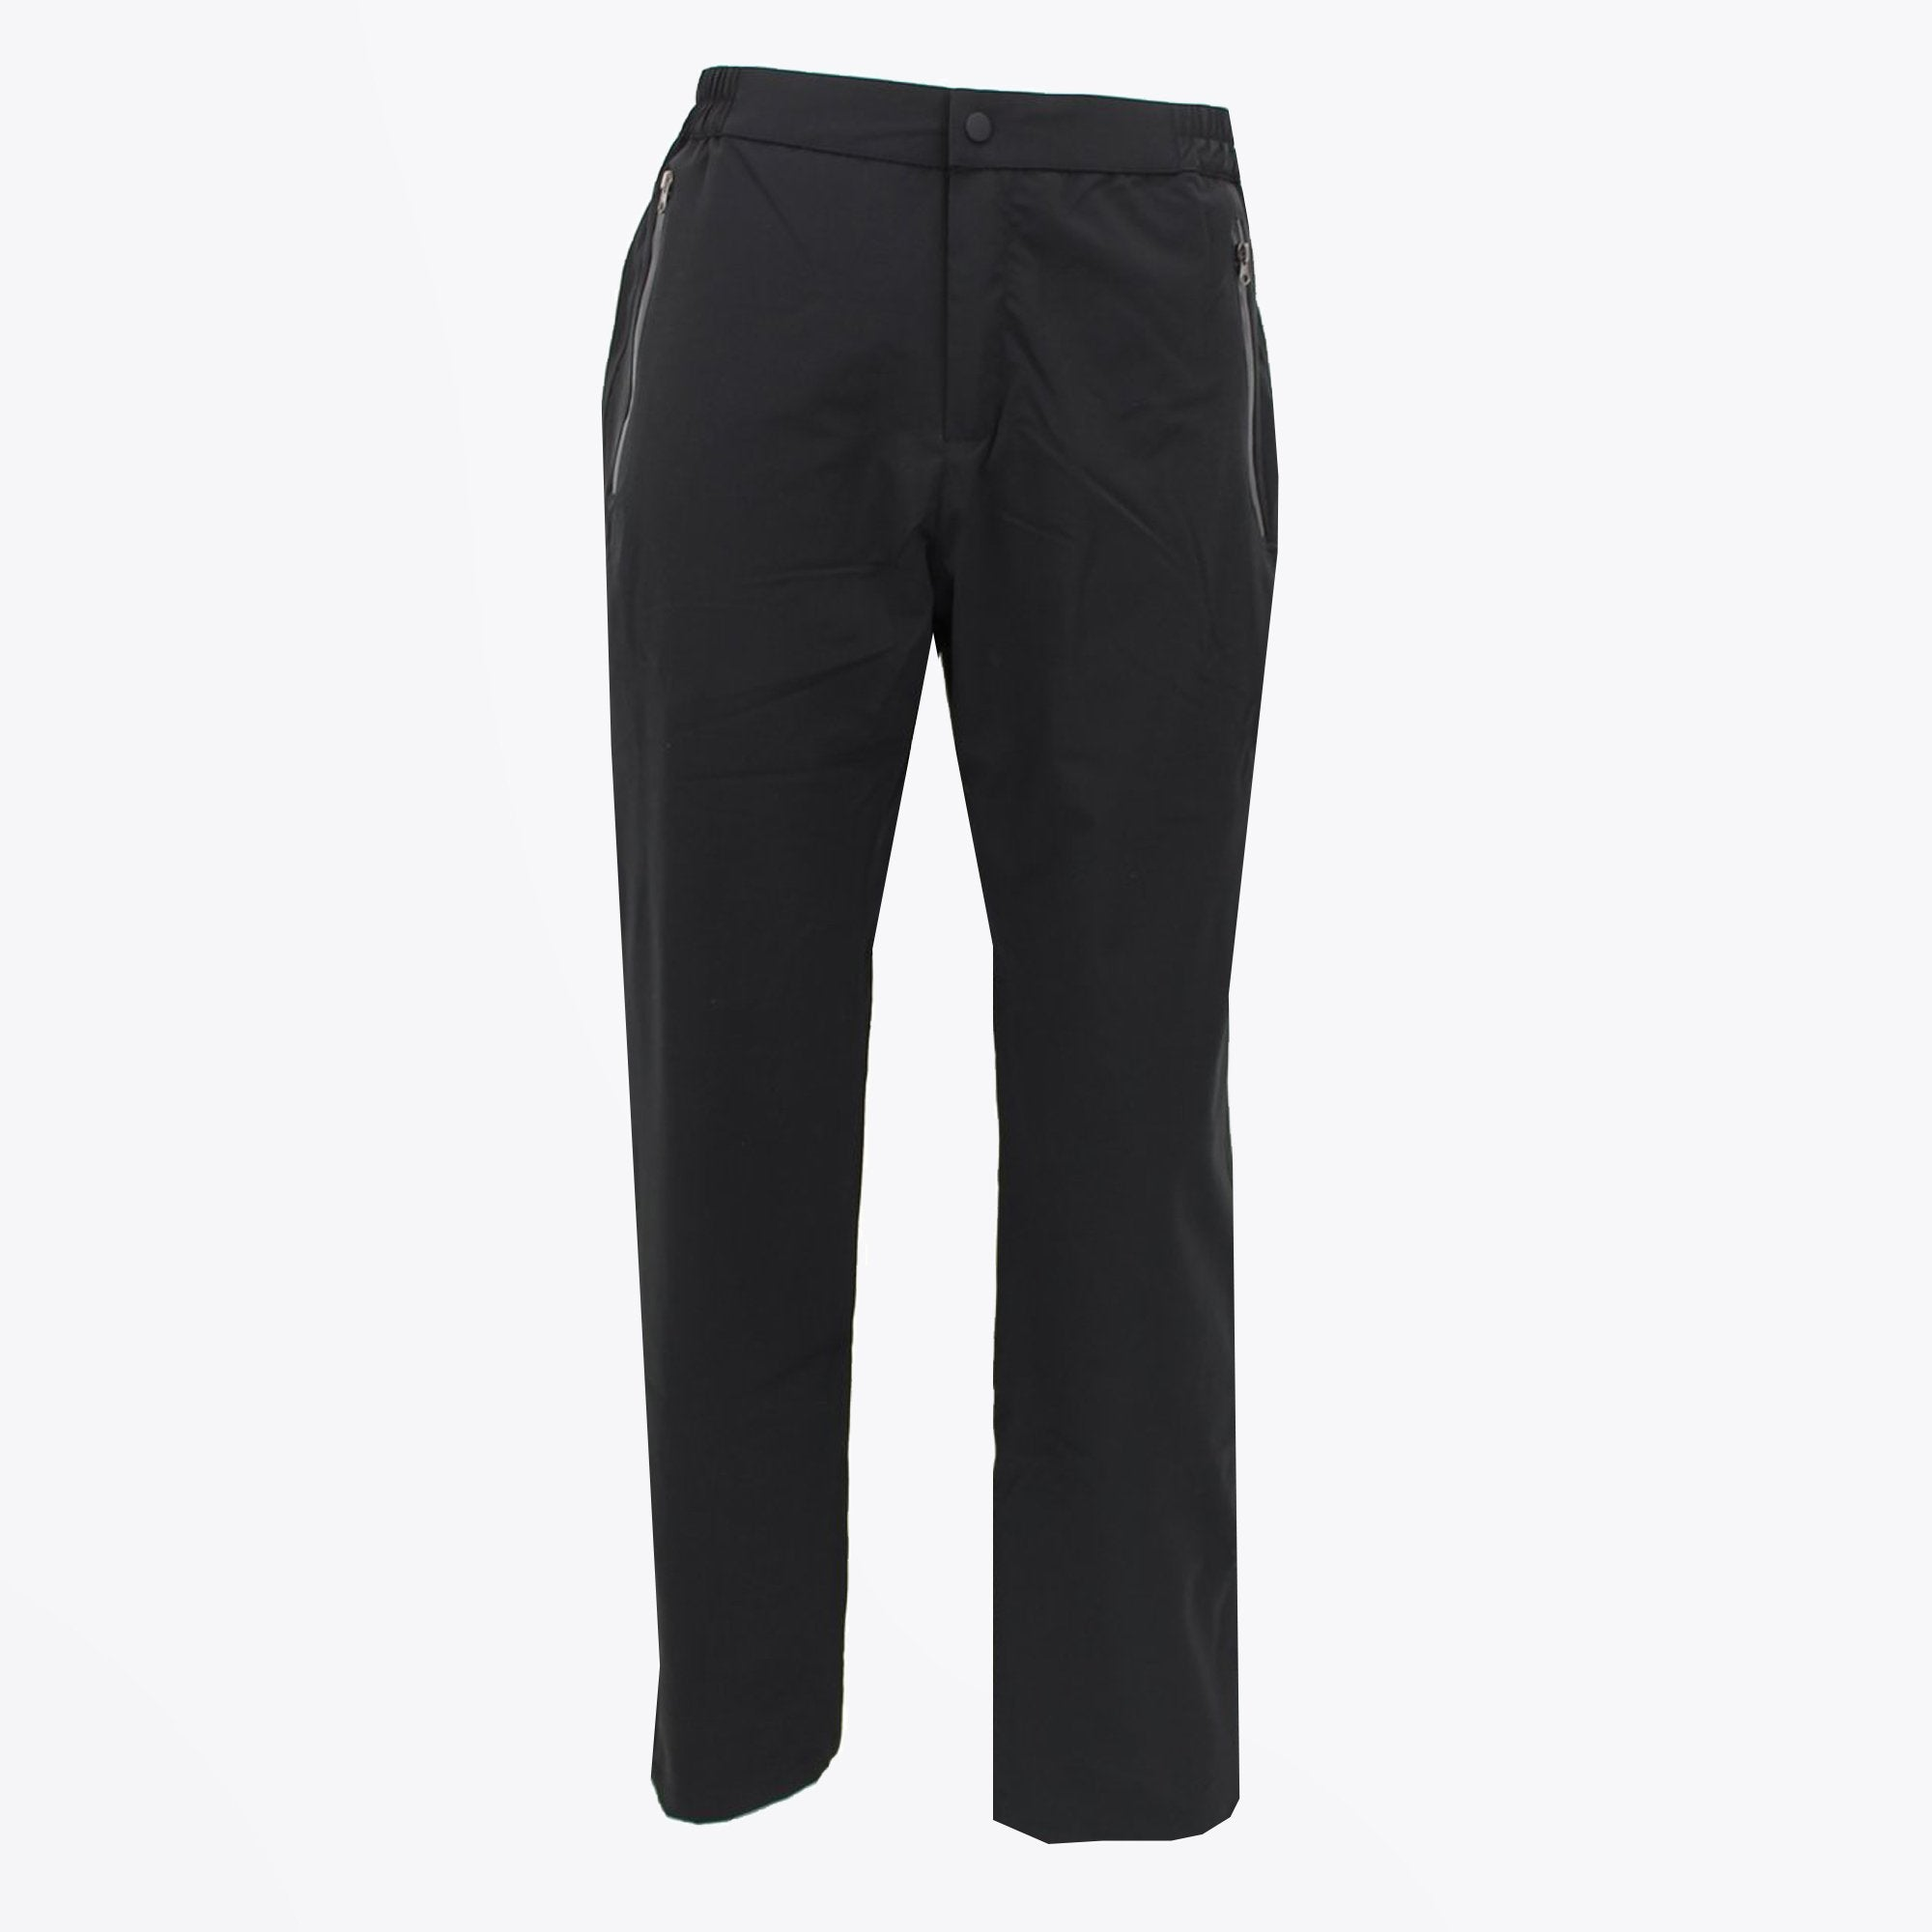 Druids Golf - Mens Rain Trousers (Black)